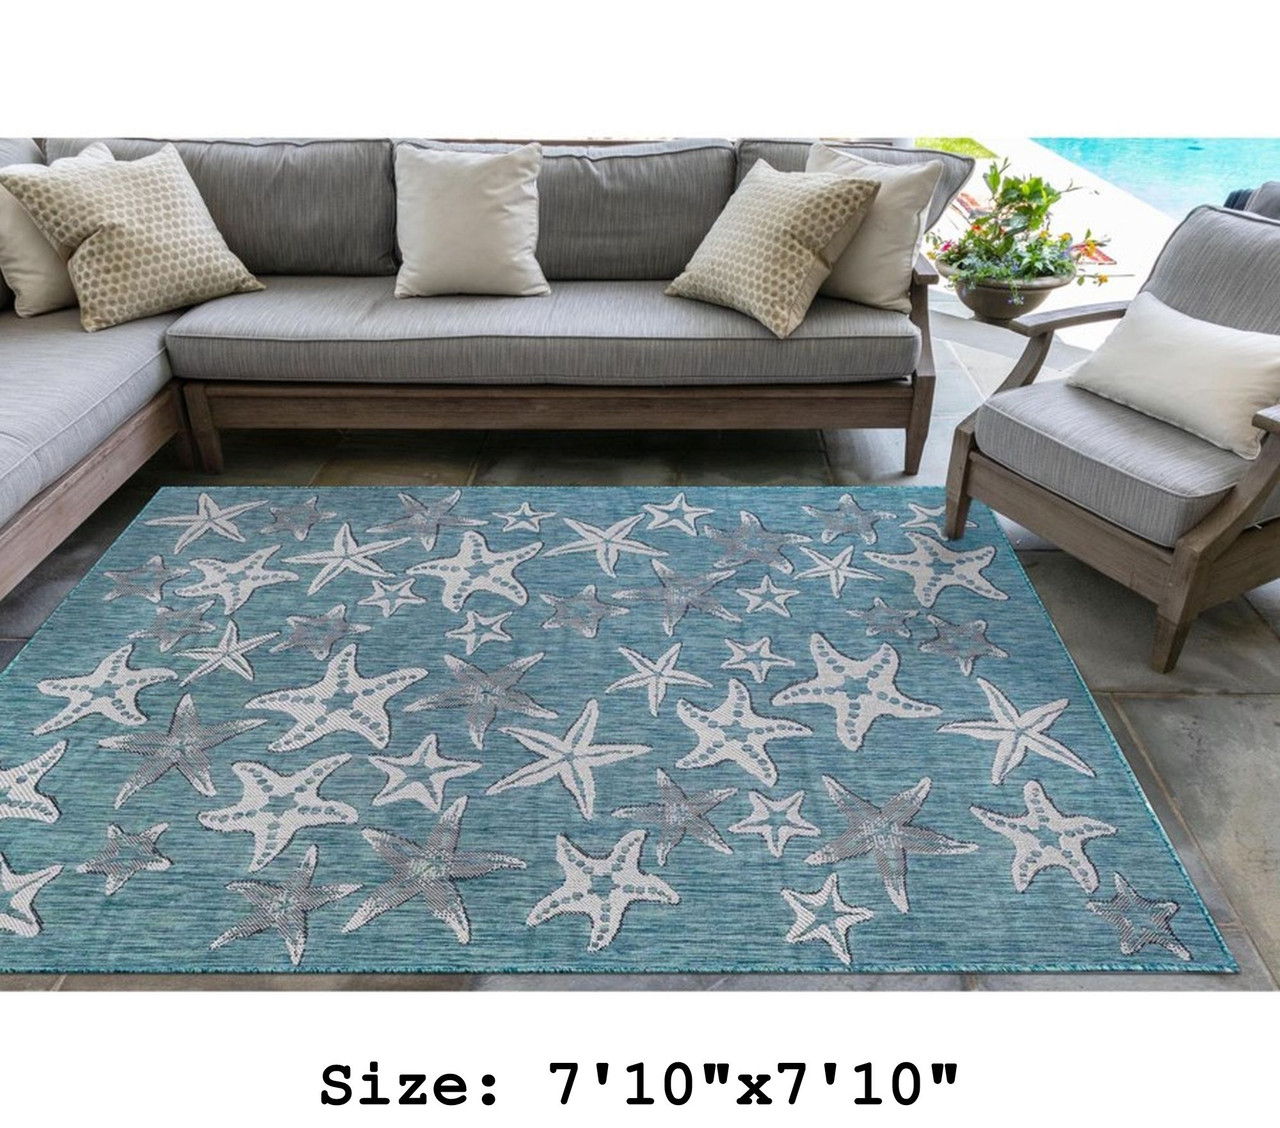 Aqua Carmel Starfish Indoor/Outdoor Rug - Square Lifestyle